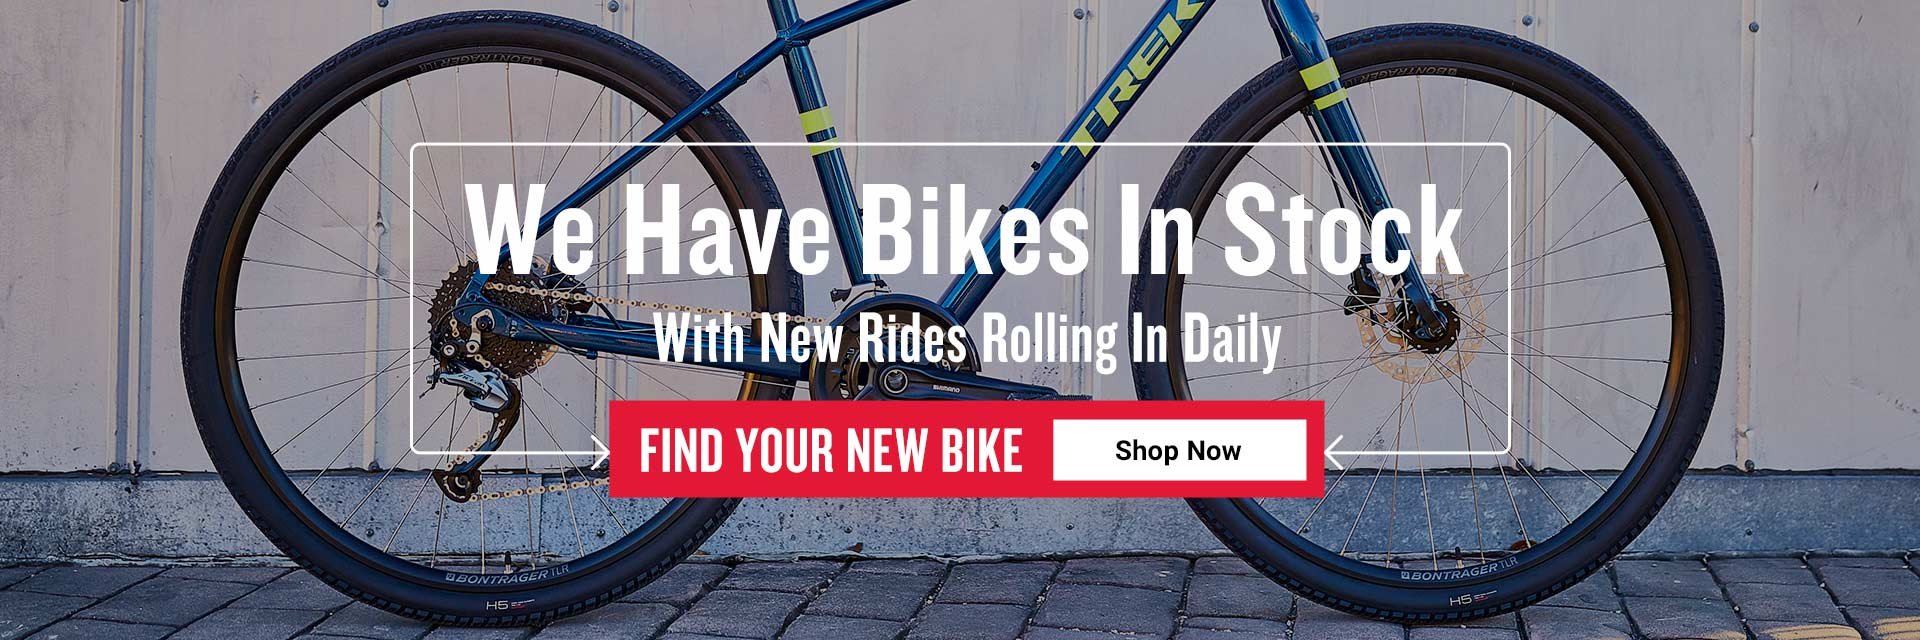 We have bikes in stock with new rides rolling in daily. Find your new bike. Shop now.